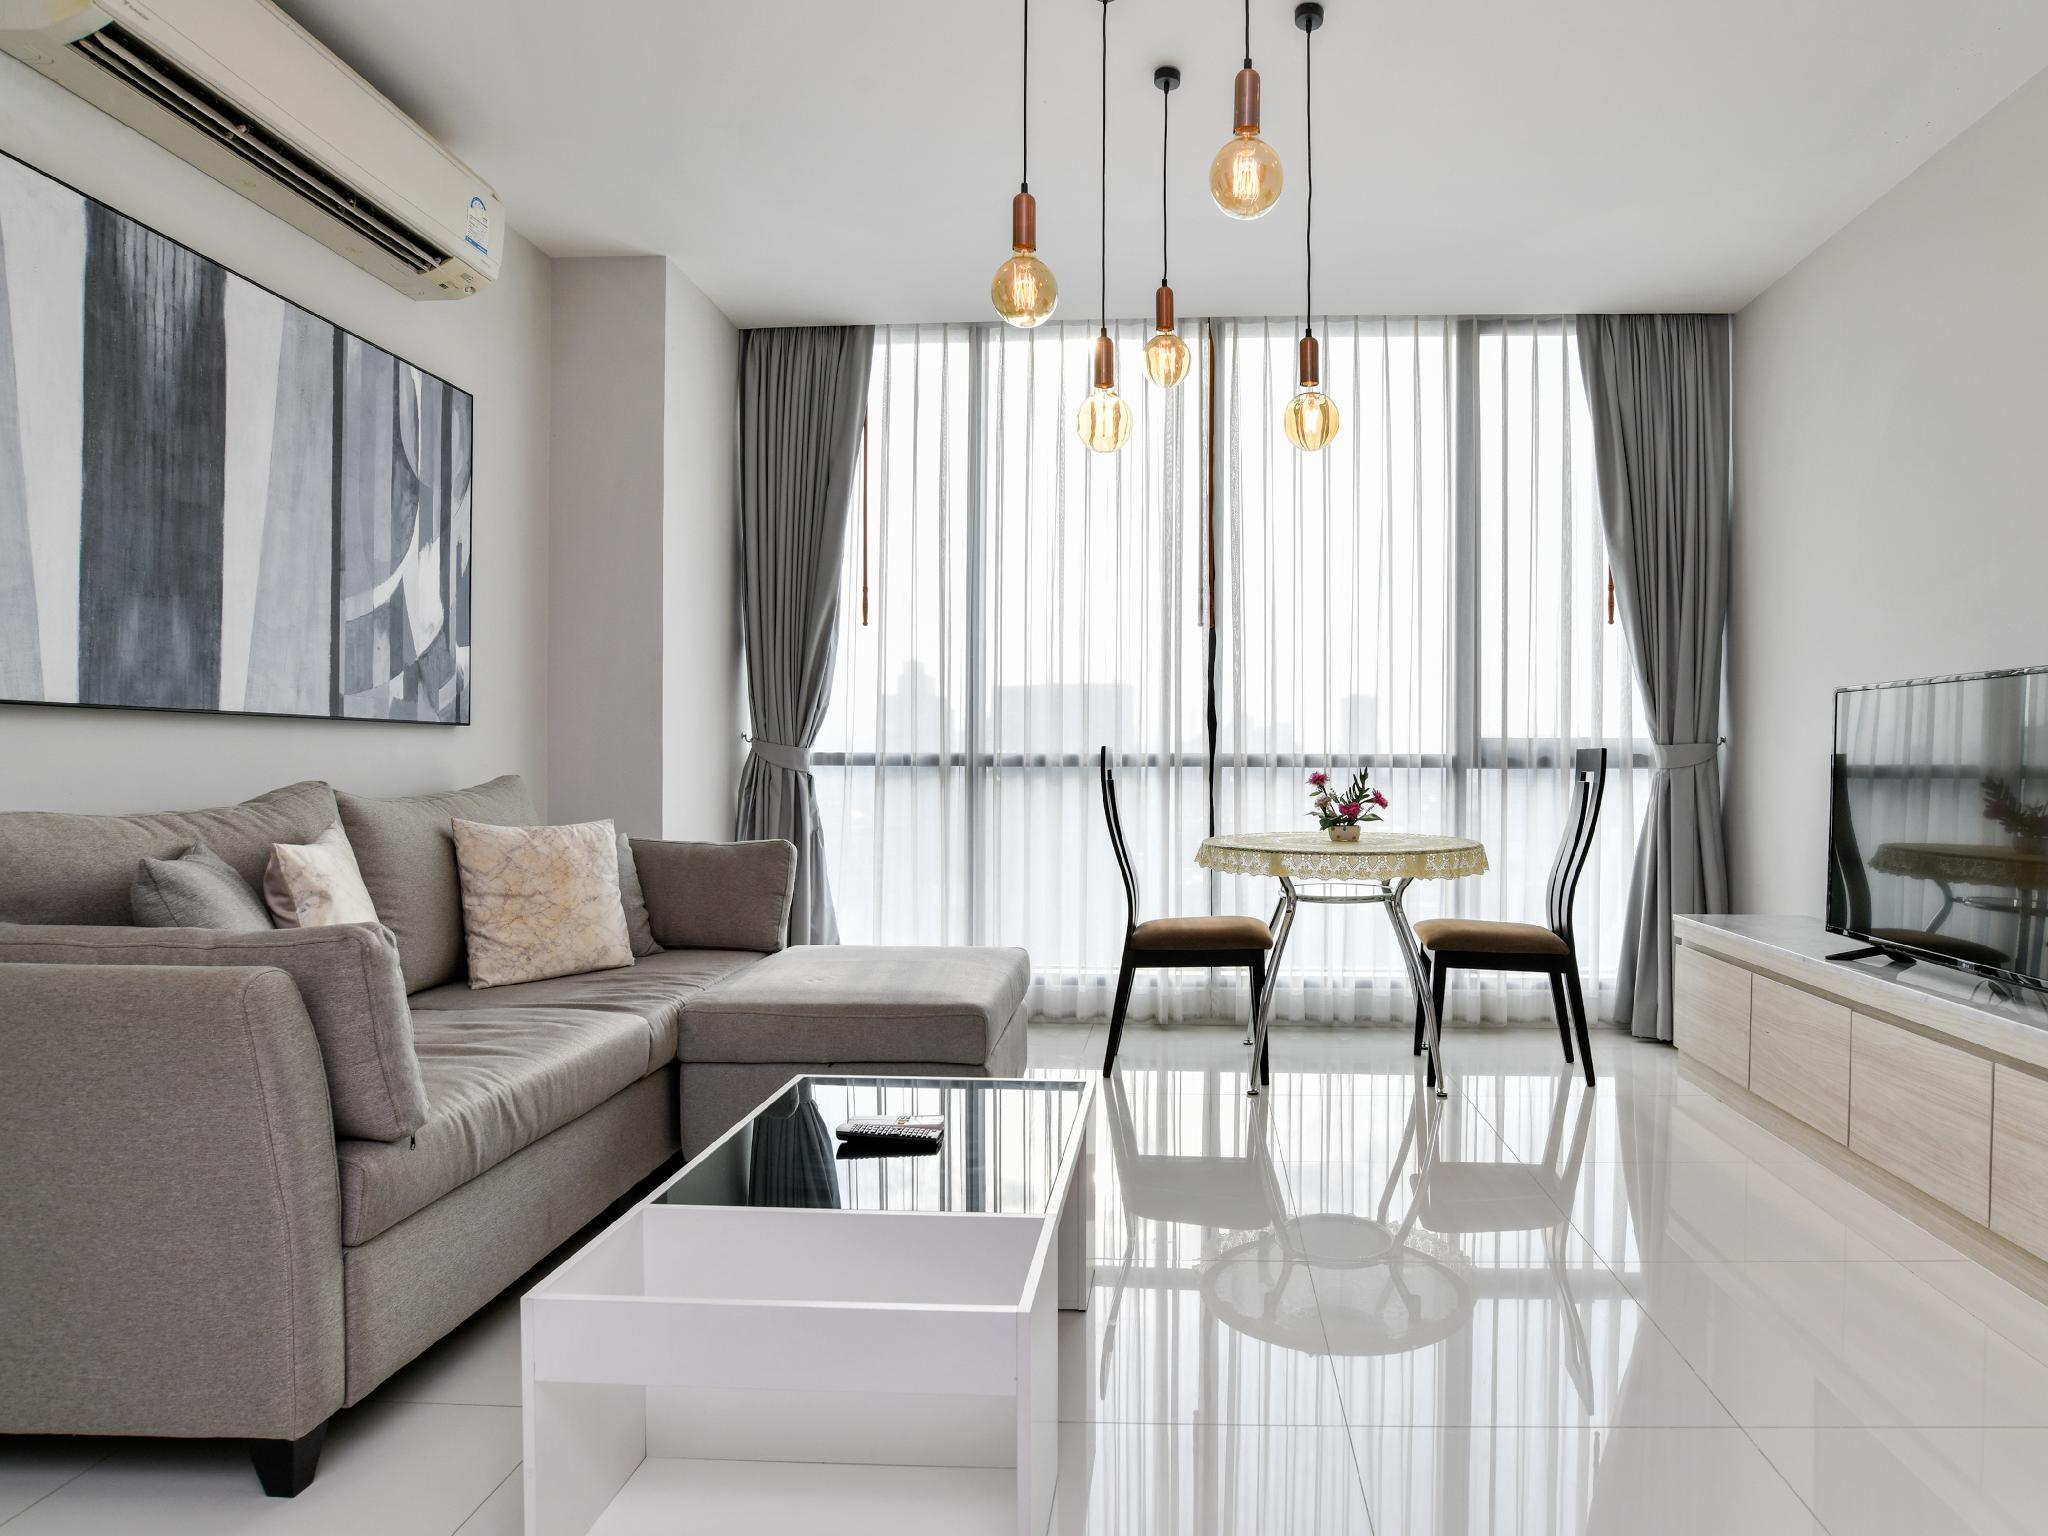 Modern Apartment With Many Amenities